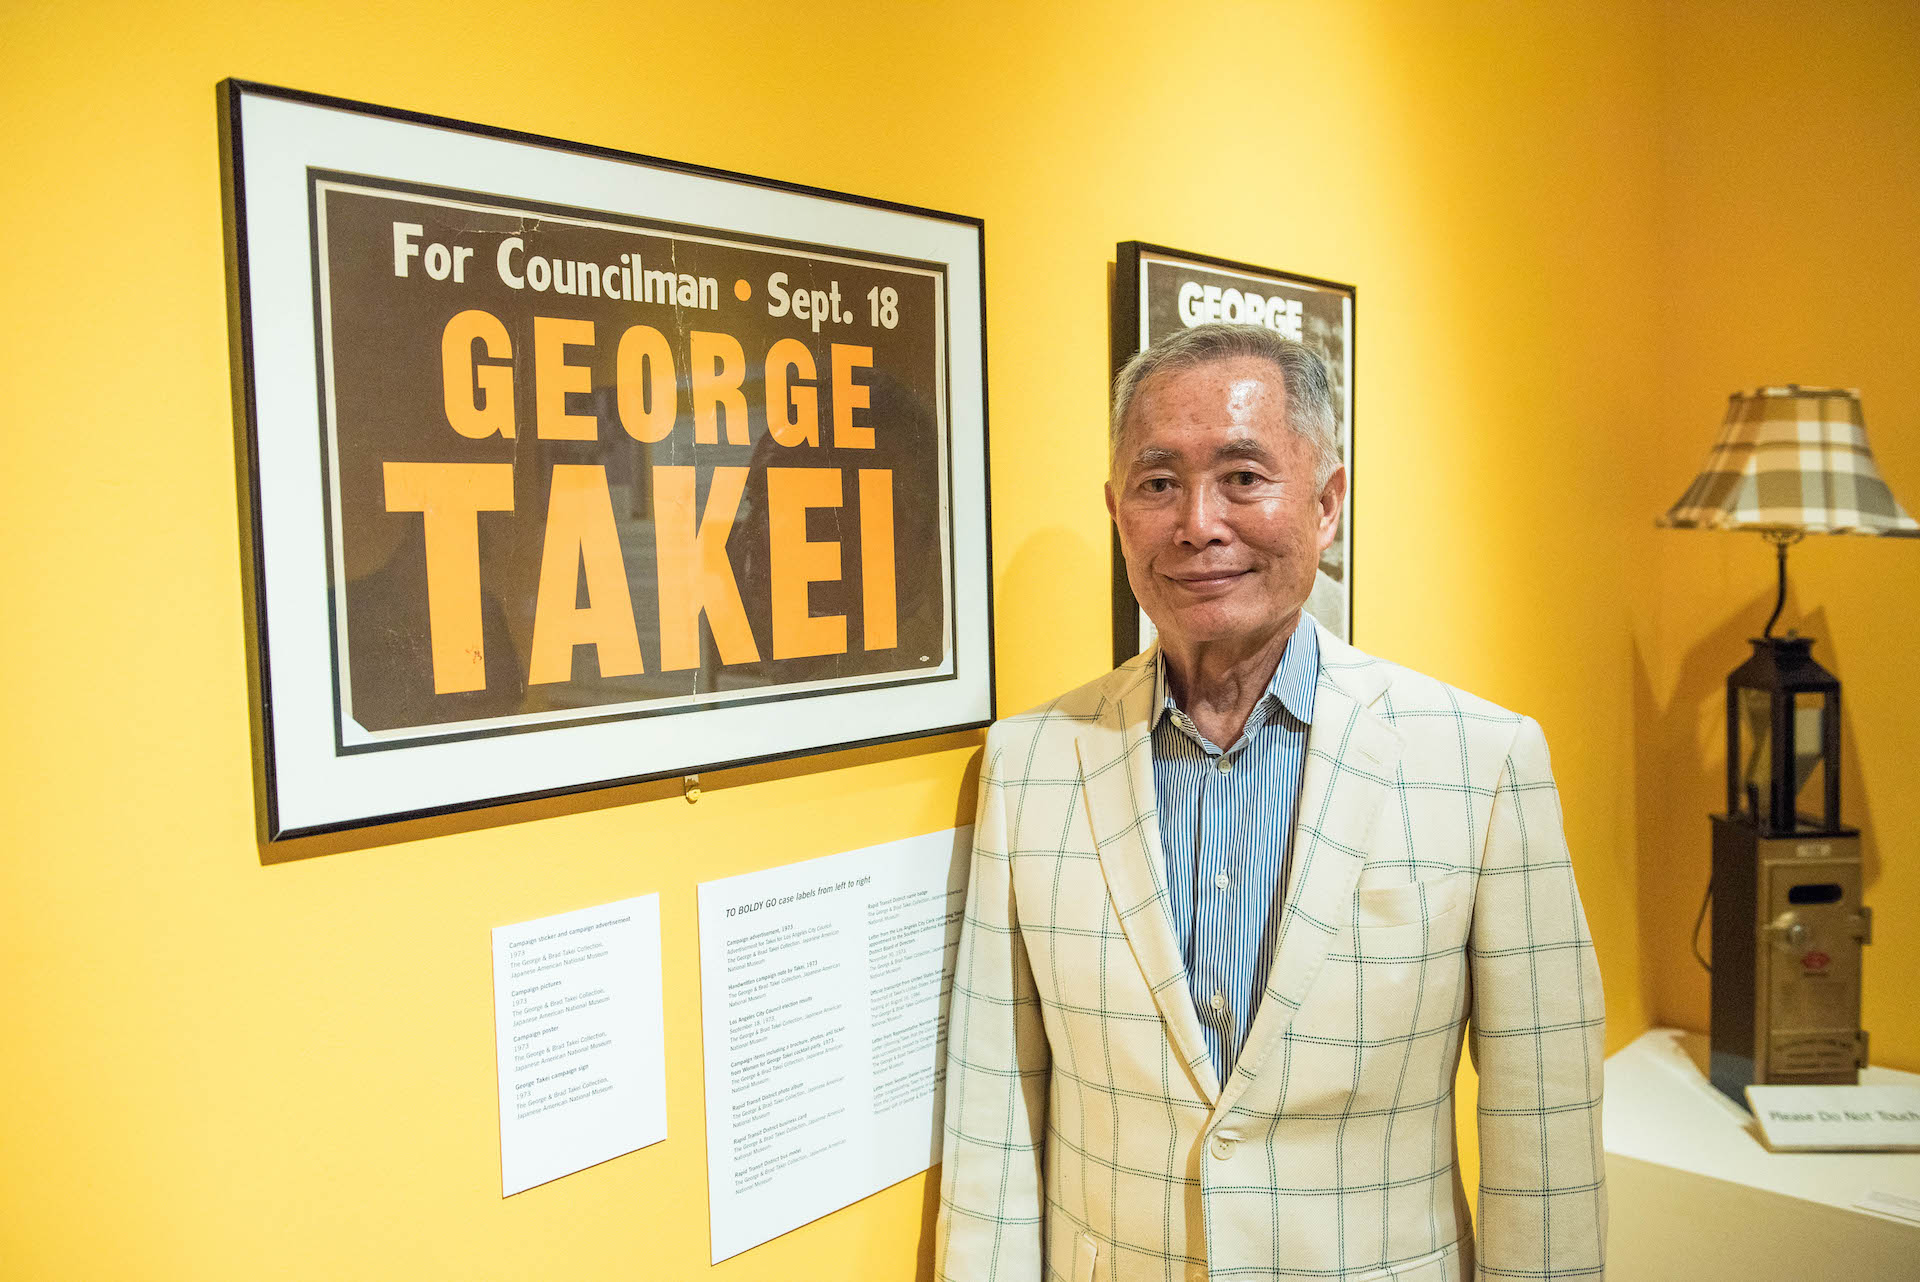 In 1973, George Takei ran for a seat on the L.A. City Council.